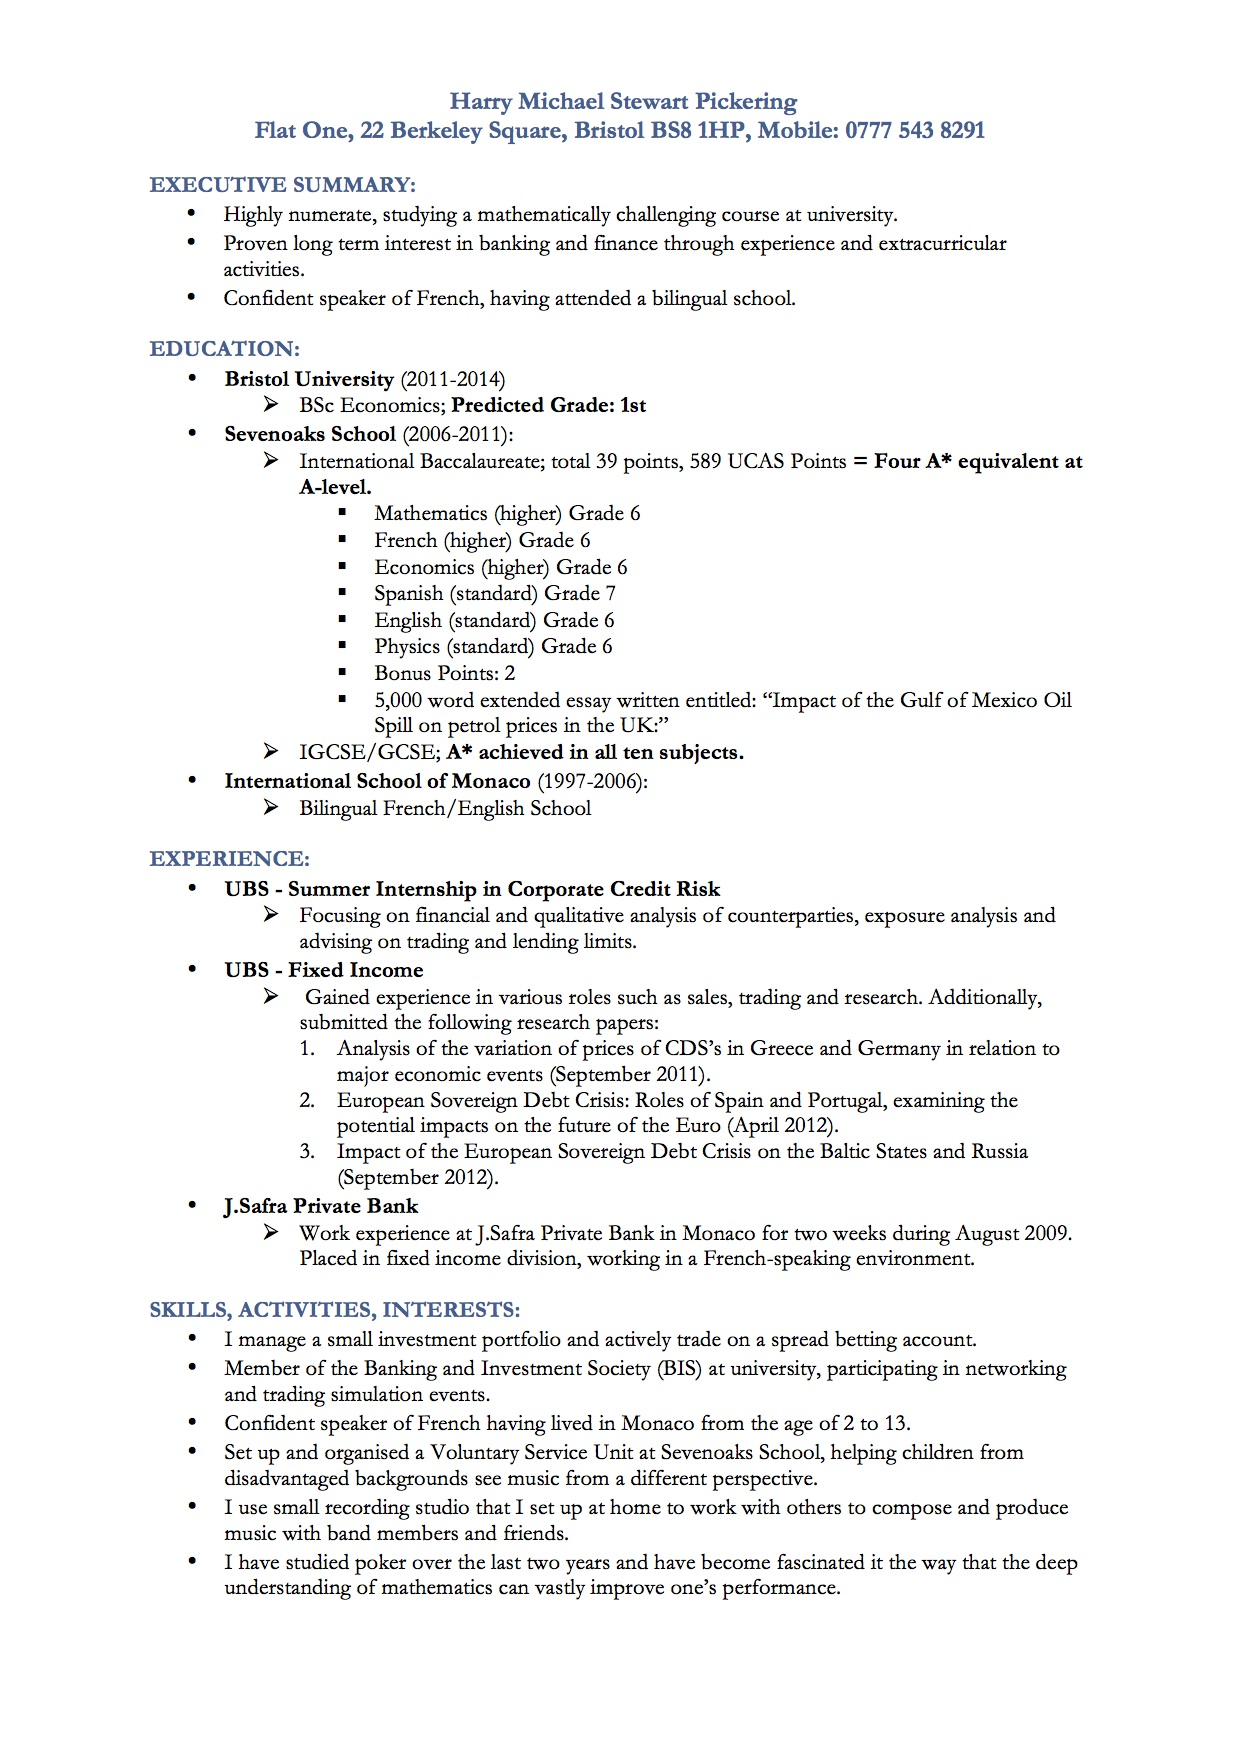 Homework assignment template document image 3